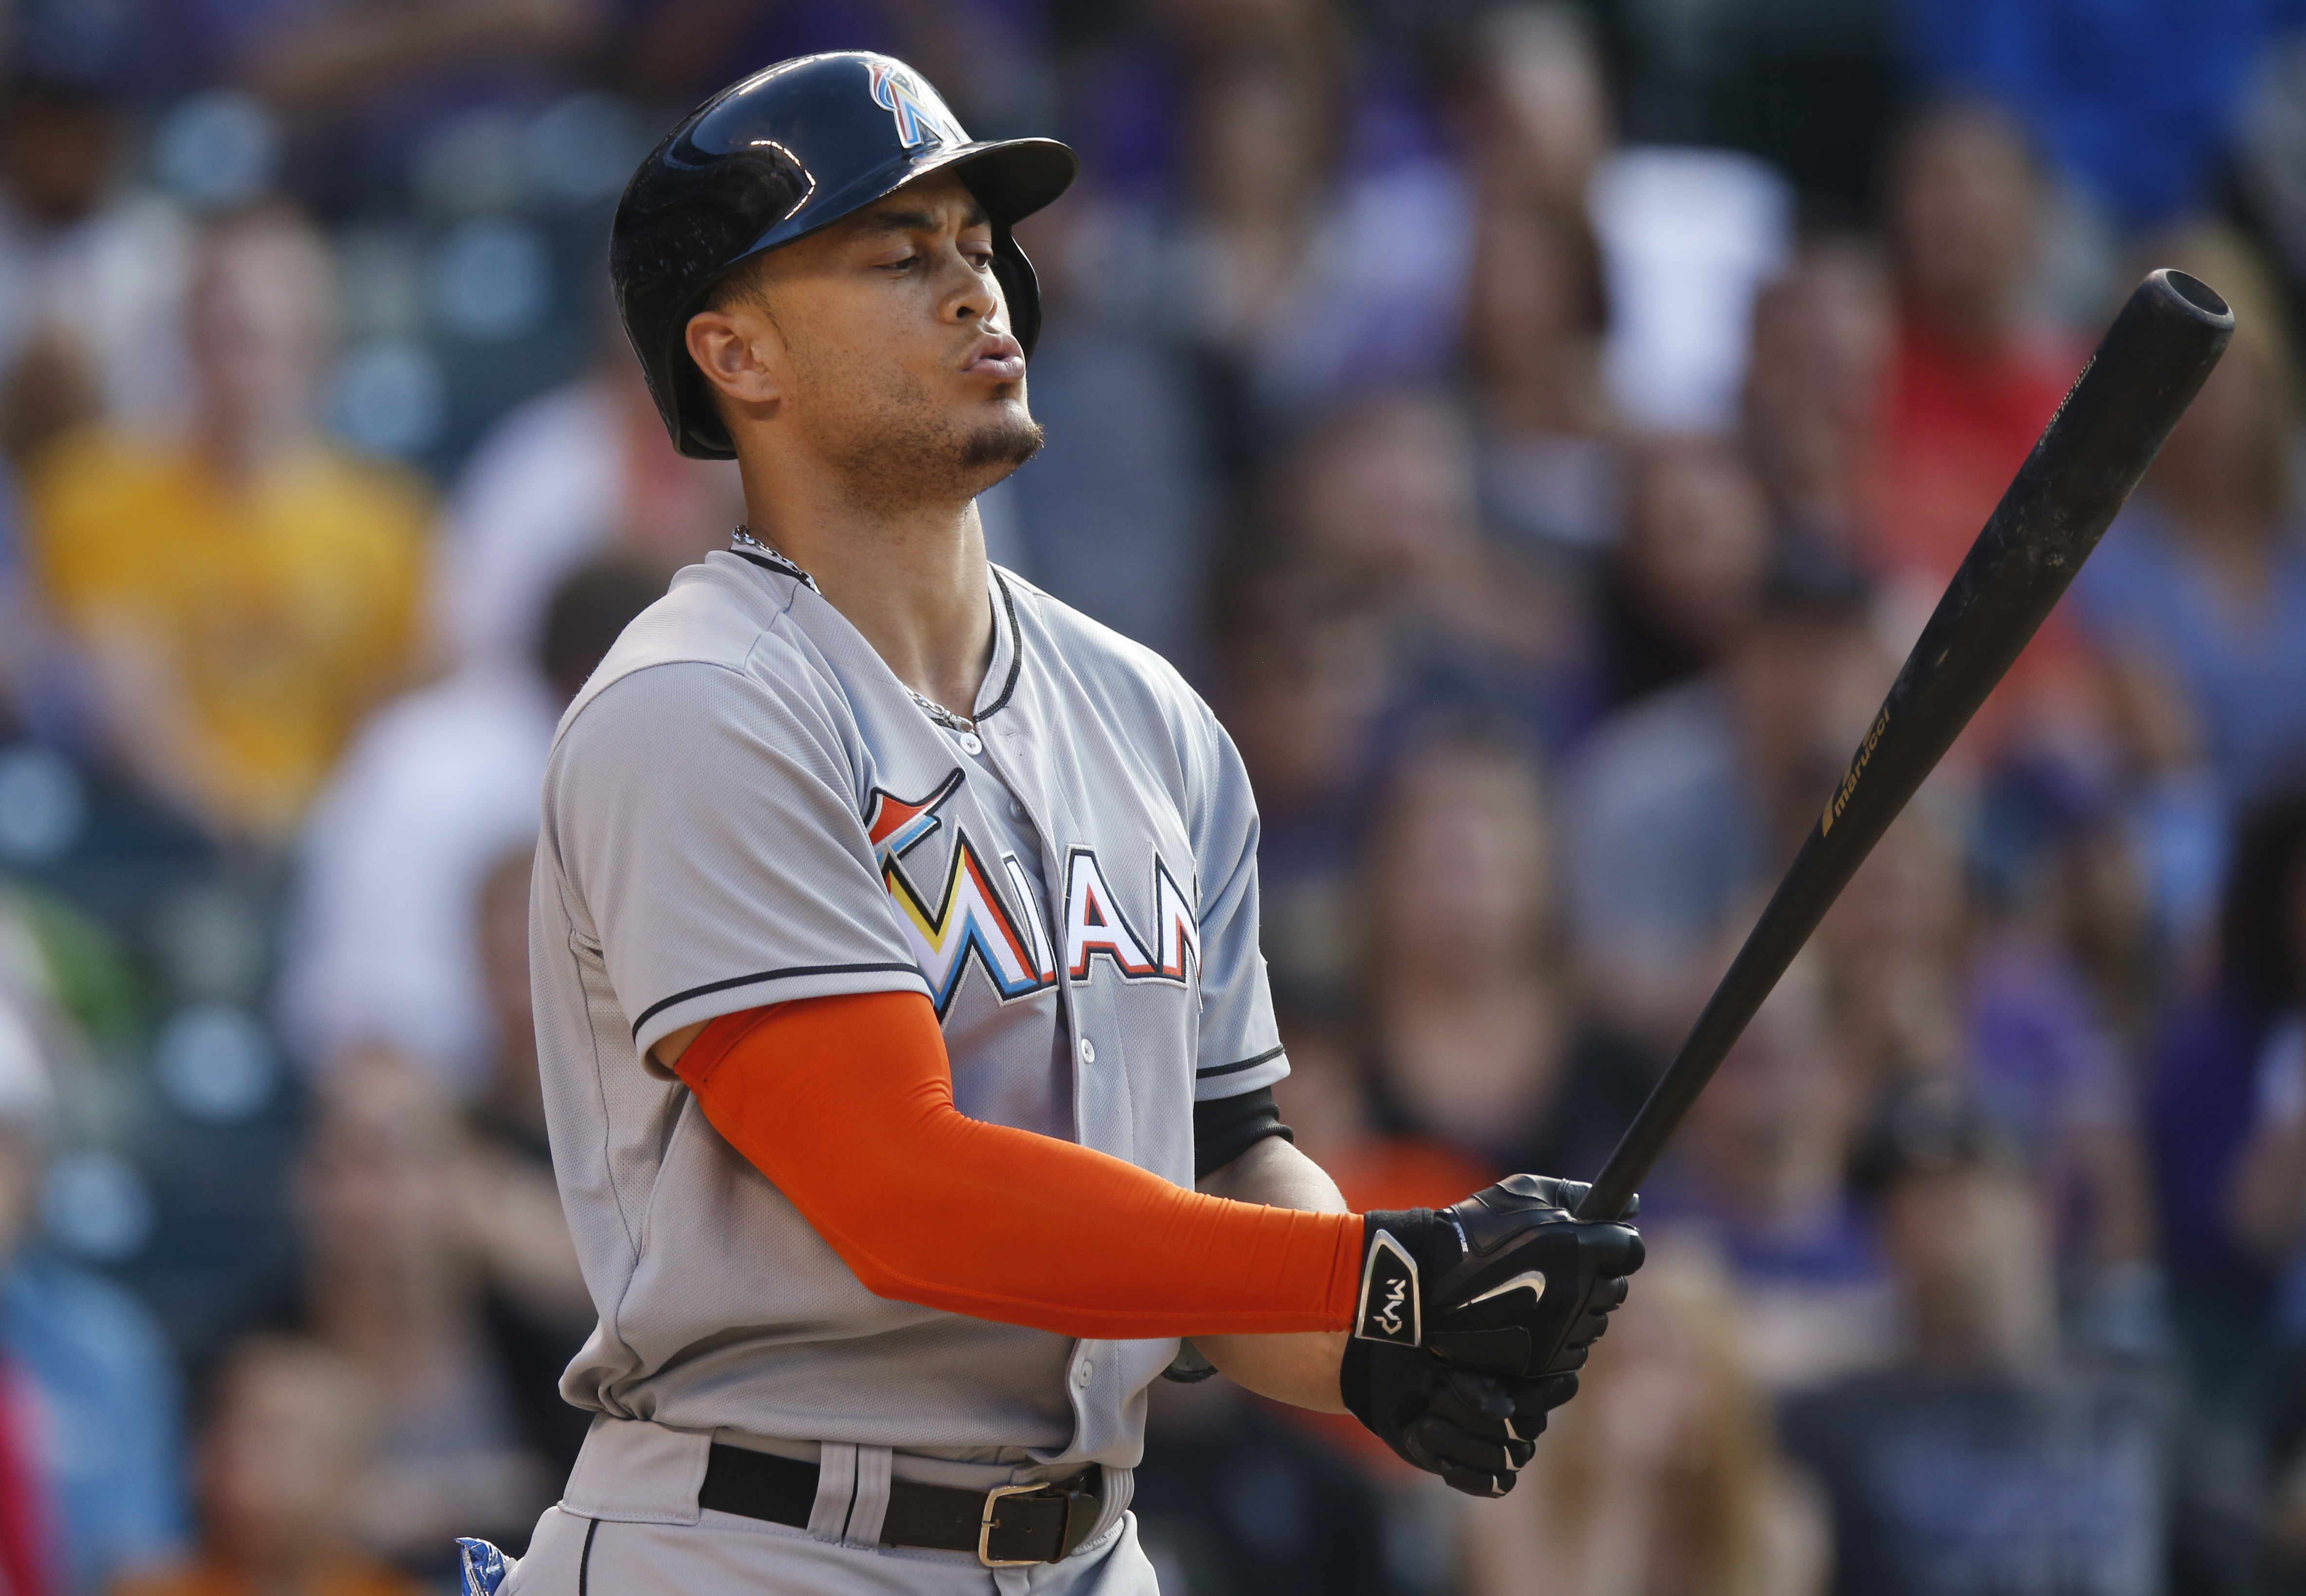 Miami Marlins' Giancarlo Stanton reacts after swinging and missing a pitch from Colorado Rockies starting pitcher Chris Rusin in the seventh inning of a baseball game Saturday, June 6, 2015, in Denver. (AP Photo/David Zalubowski)